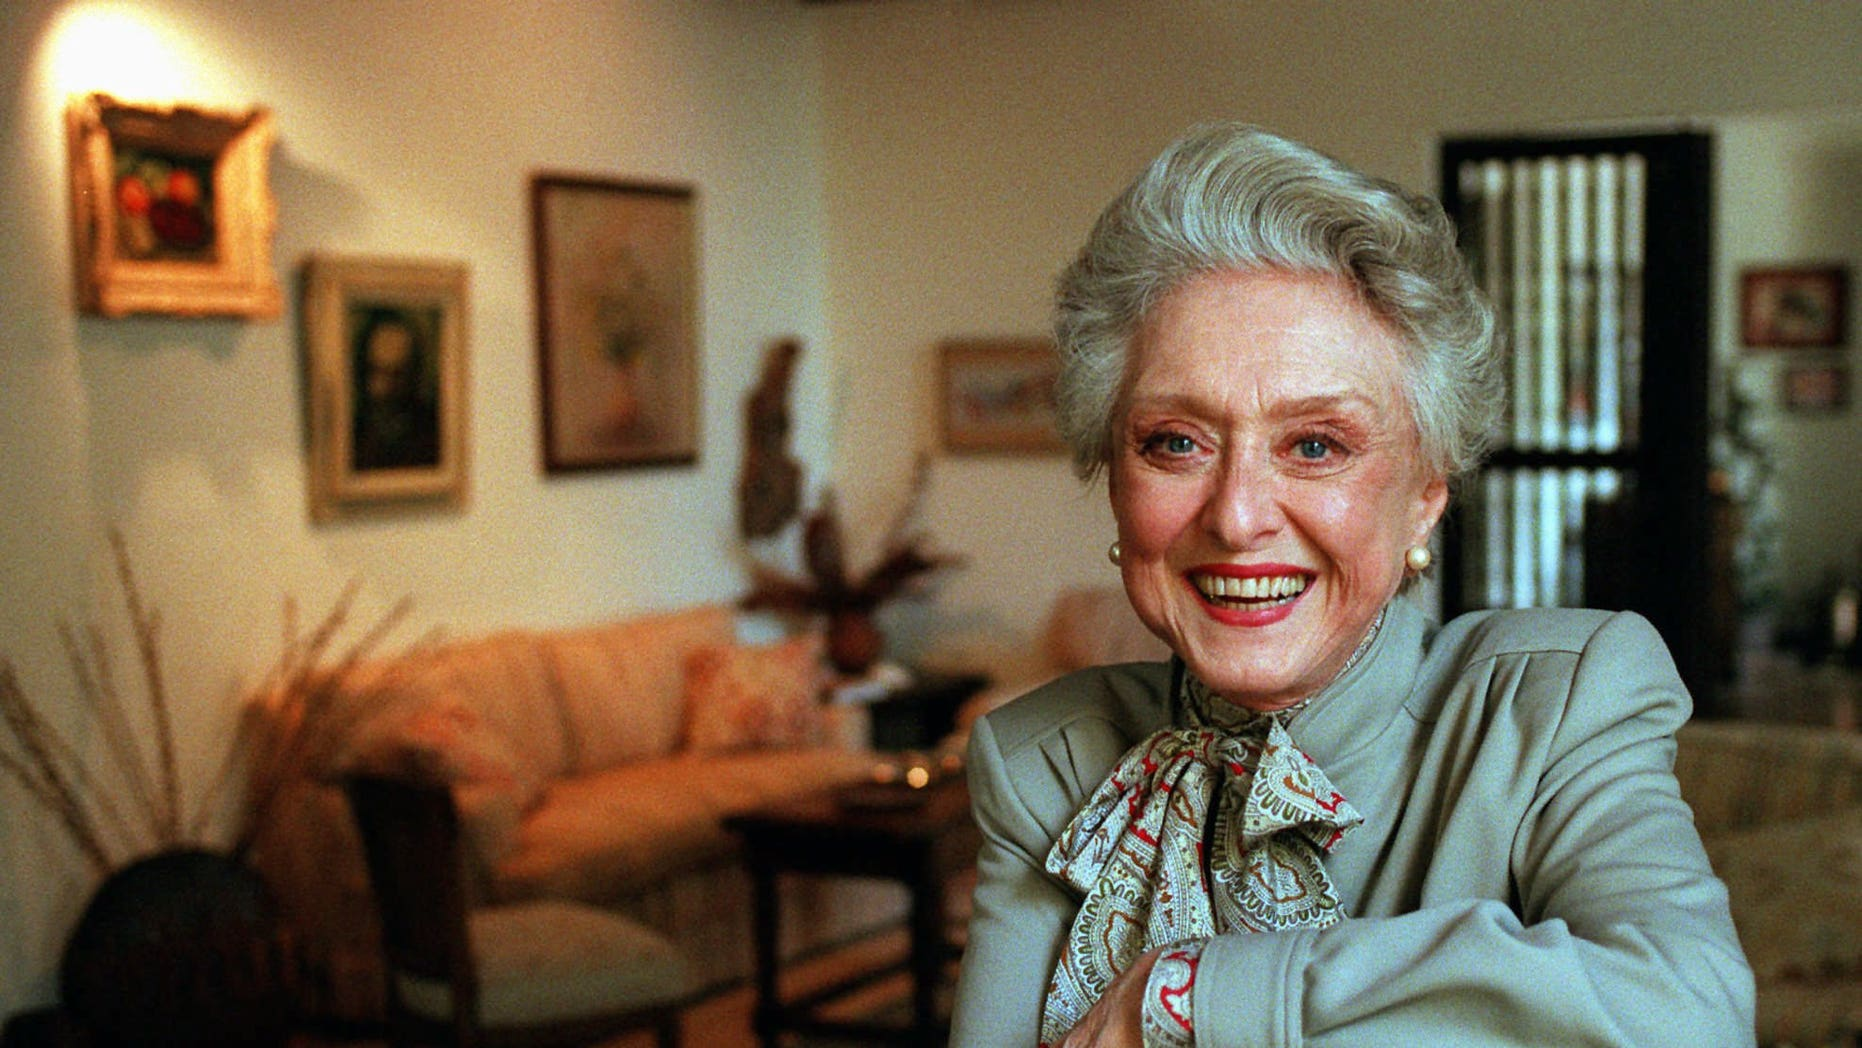 In this March 12, 1997, file photo, actress Celeste Holm poses at a friends' home in Santa Monica, Calif.